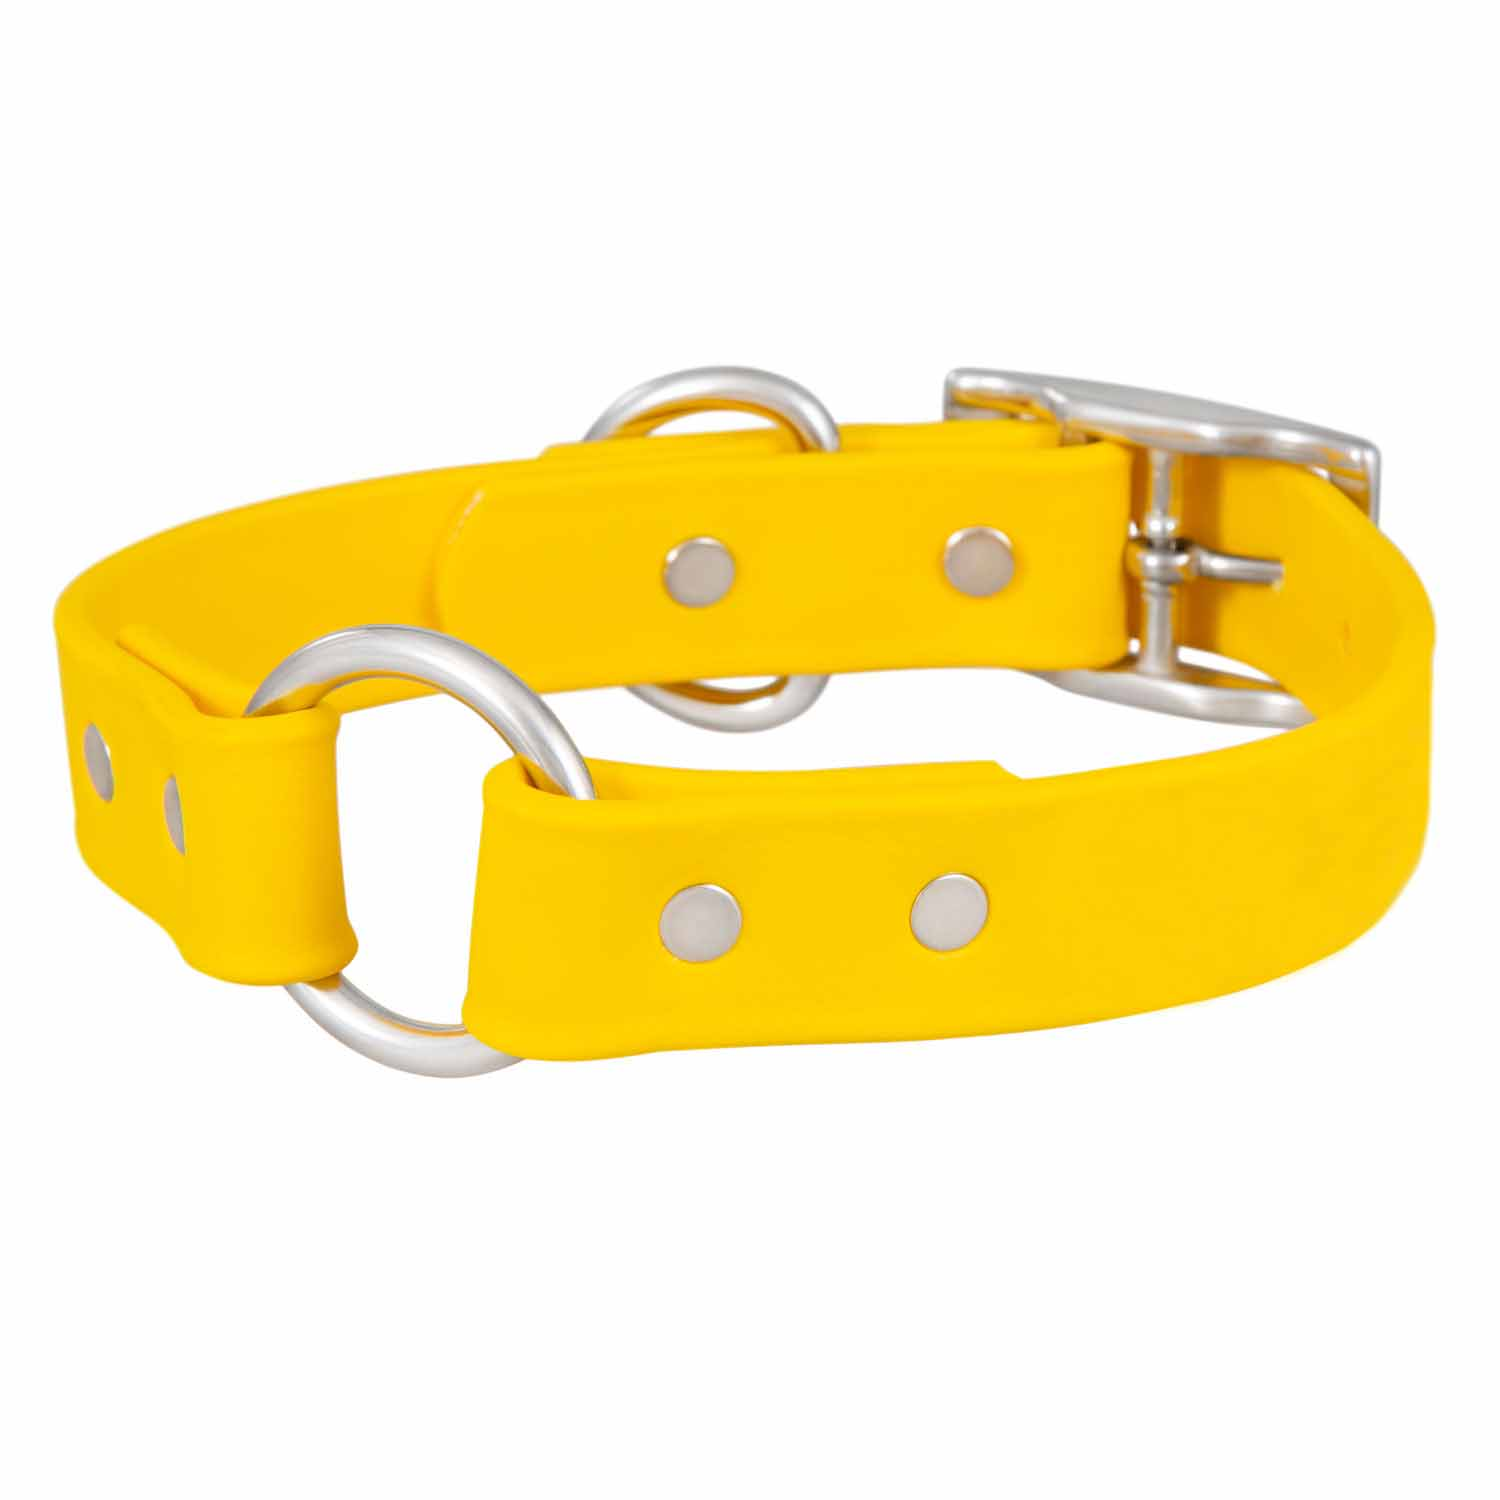 Waterproof Safety Dog Collar - Yellow